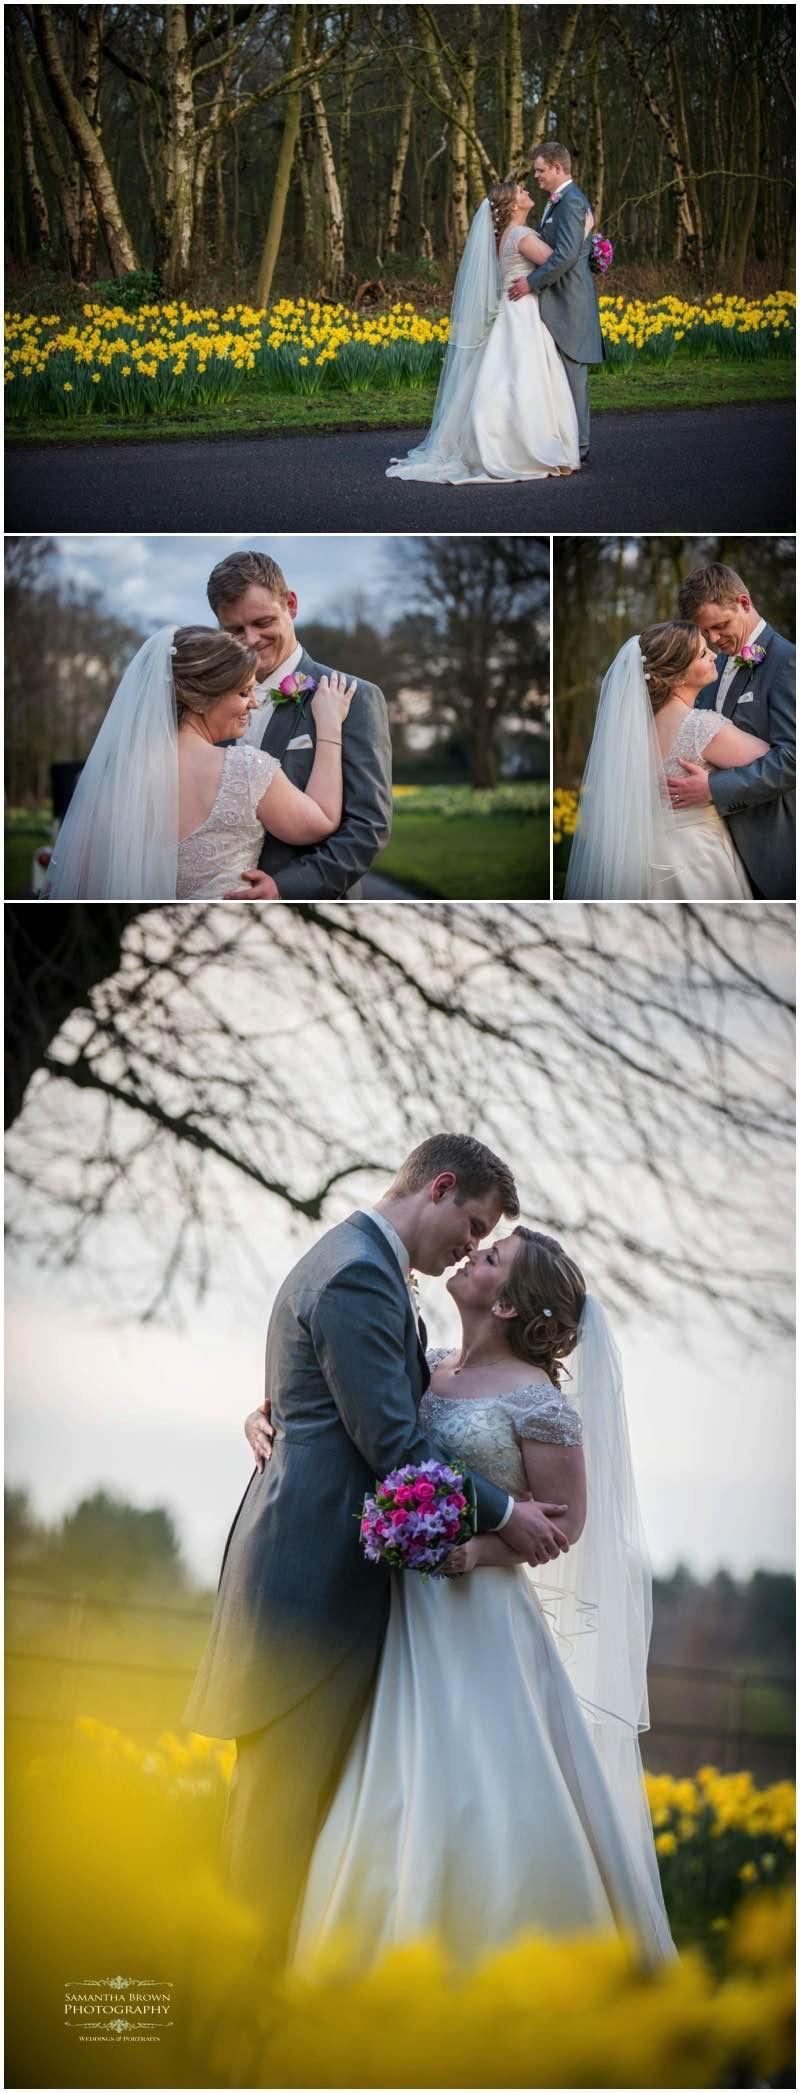 wedding Photography Liverpool by Samantha Brown_0029